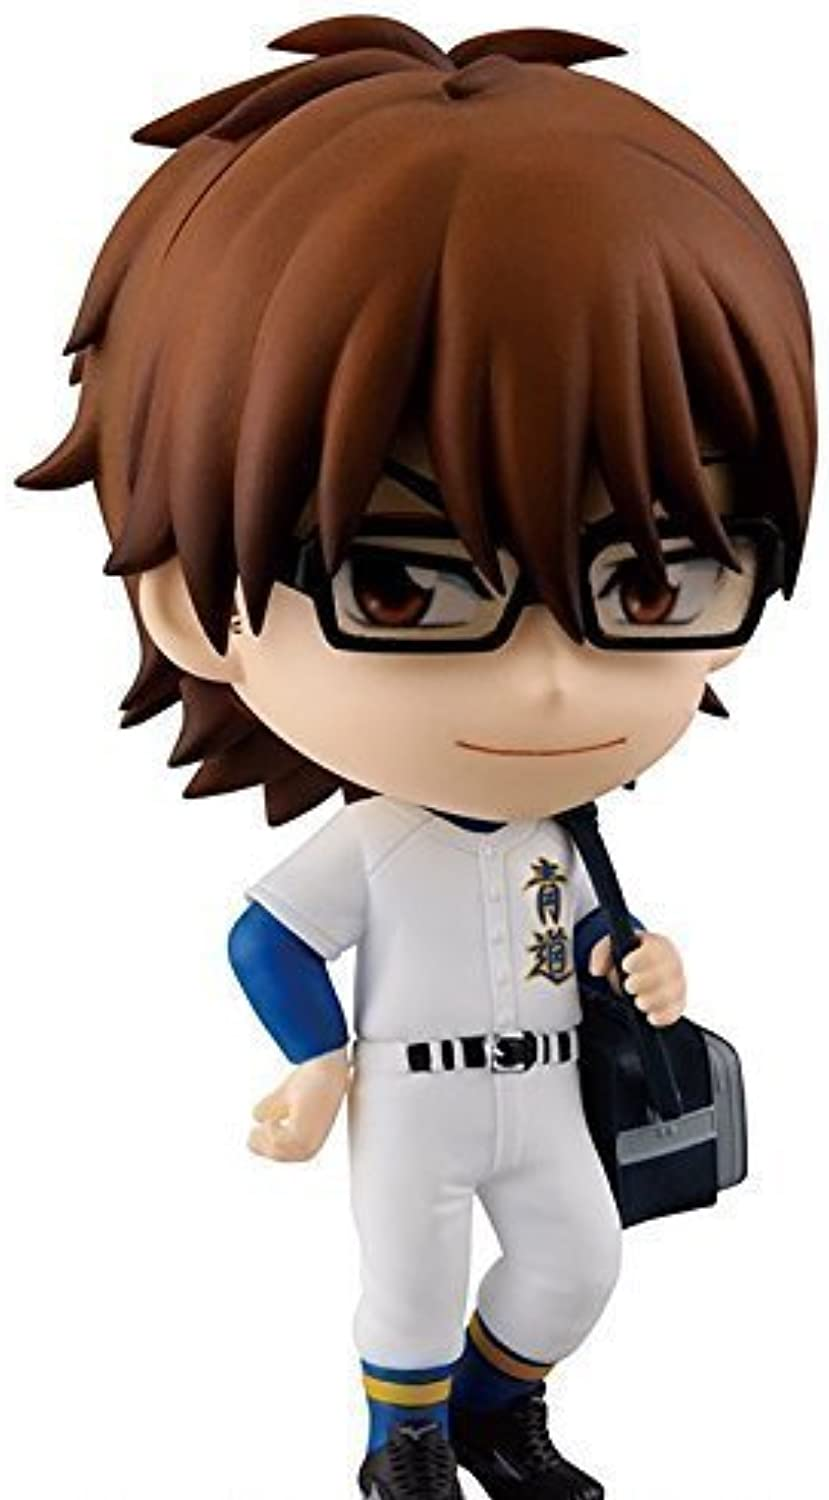 After the most lottery diamond A game character N last one Prize Miyuki Kazuya queue